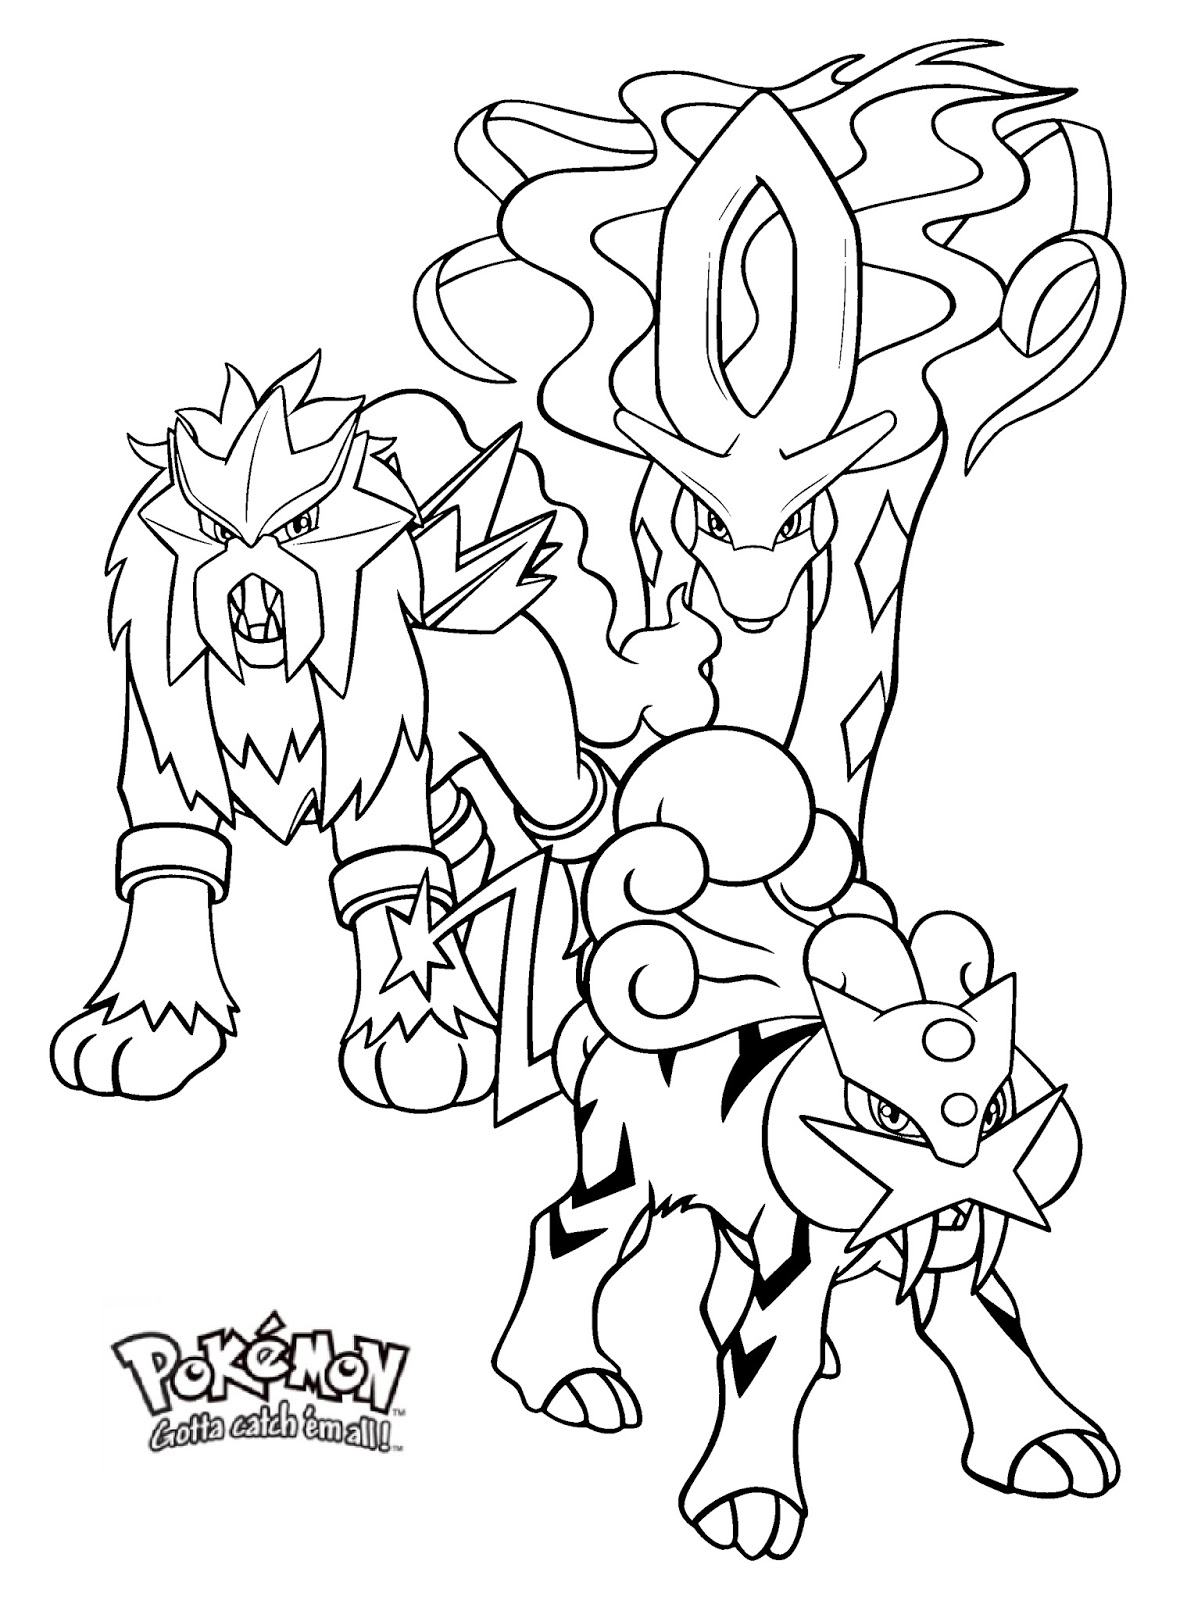 pokemon coloring books free coloring pages pokemon coloring pages anime pokemon books pokemon coloring